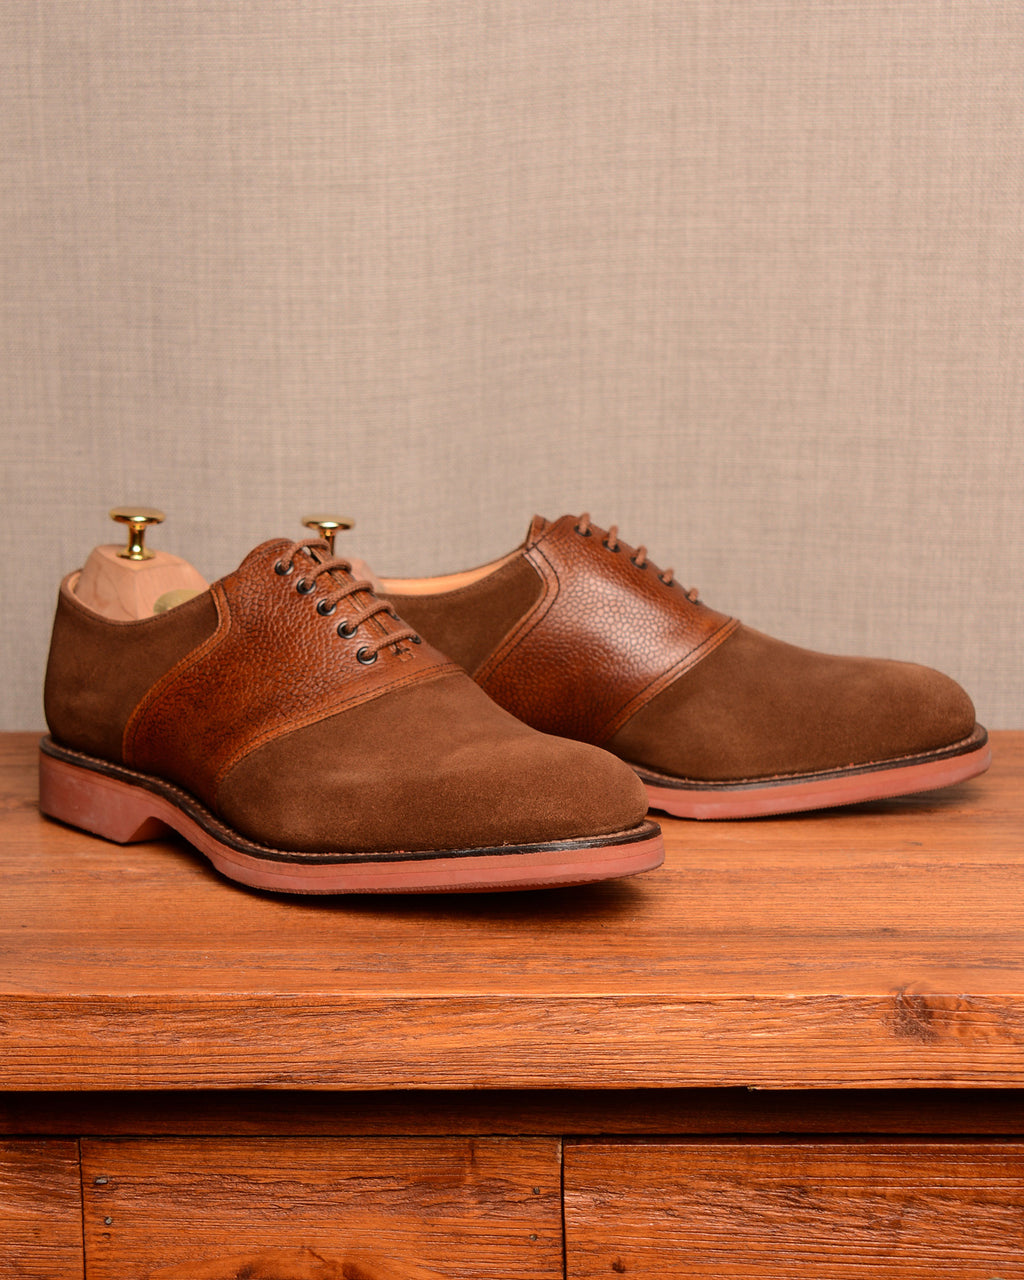 Crockett & Jones Cannock - Snuff Suede